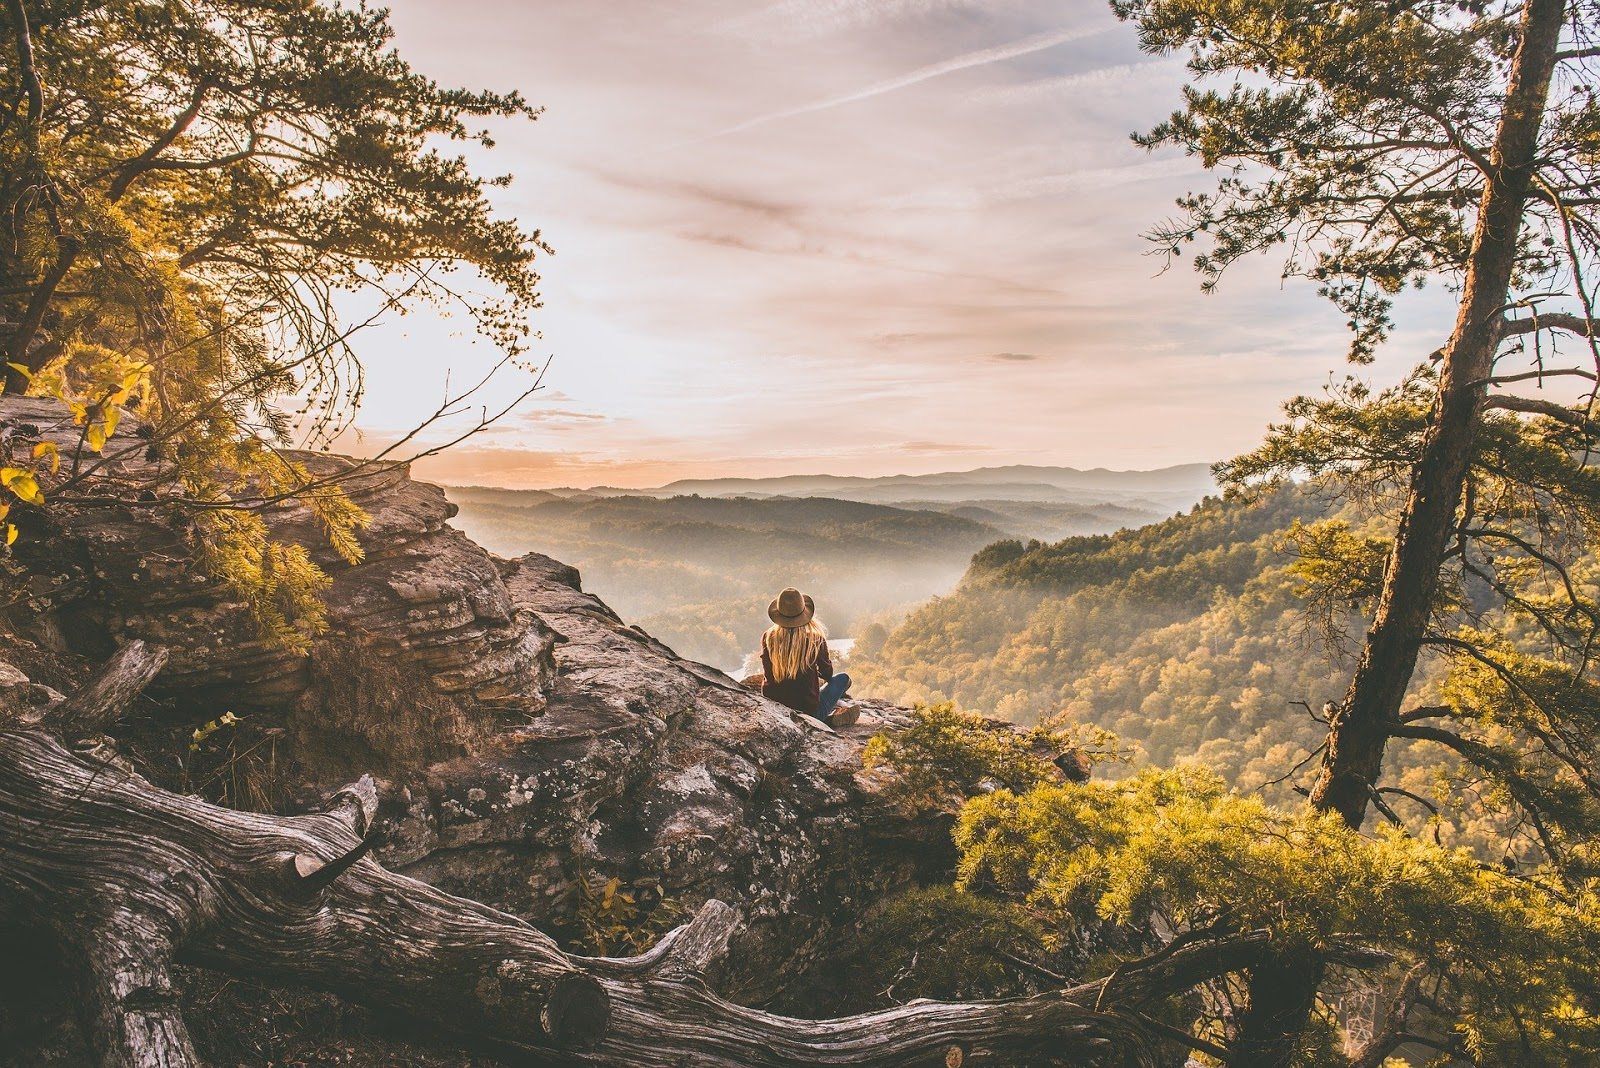 The Sports Archives Blog - The Sports Archives - 5 Things To Consider Before Your First-Ever Hike